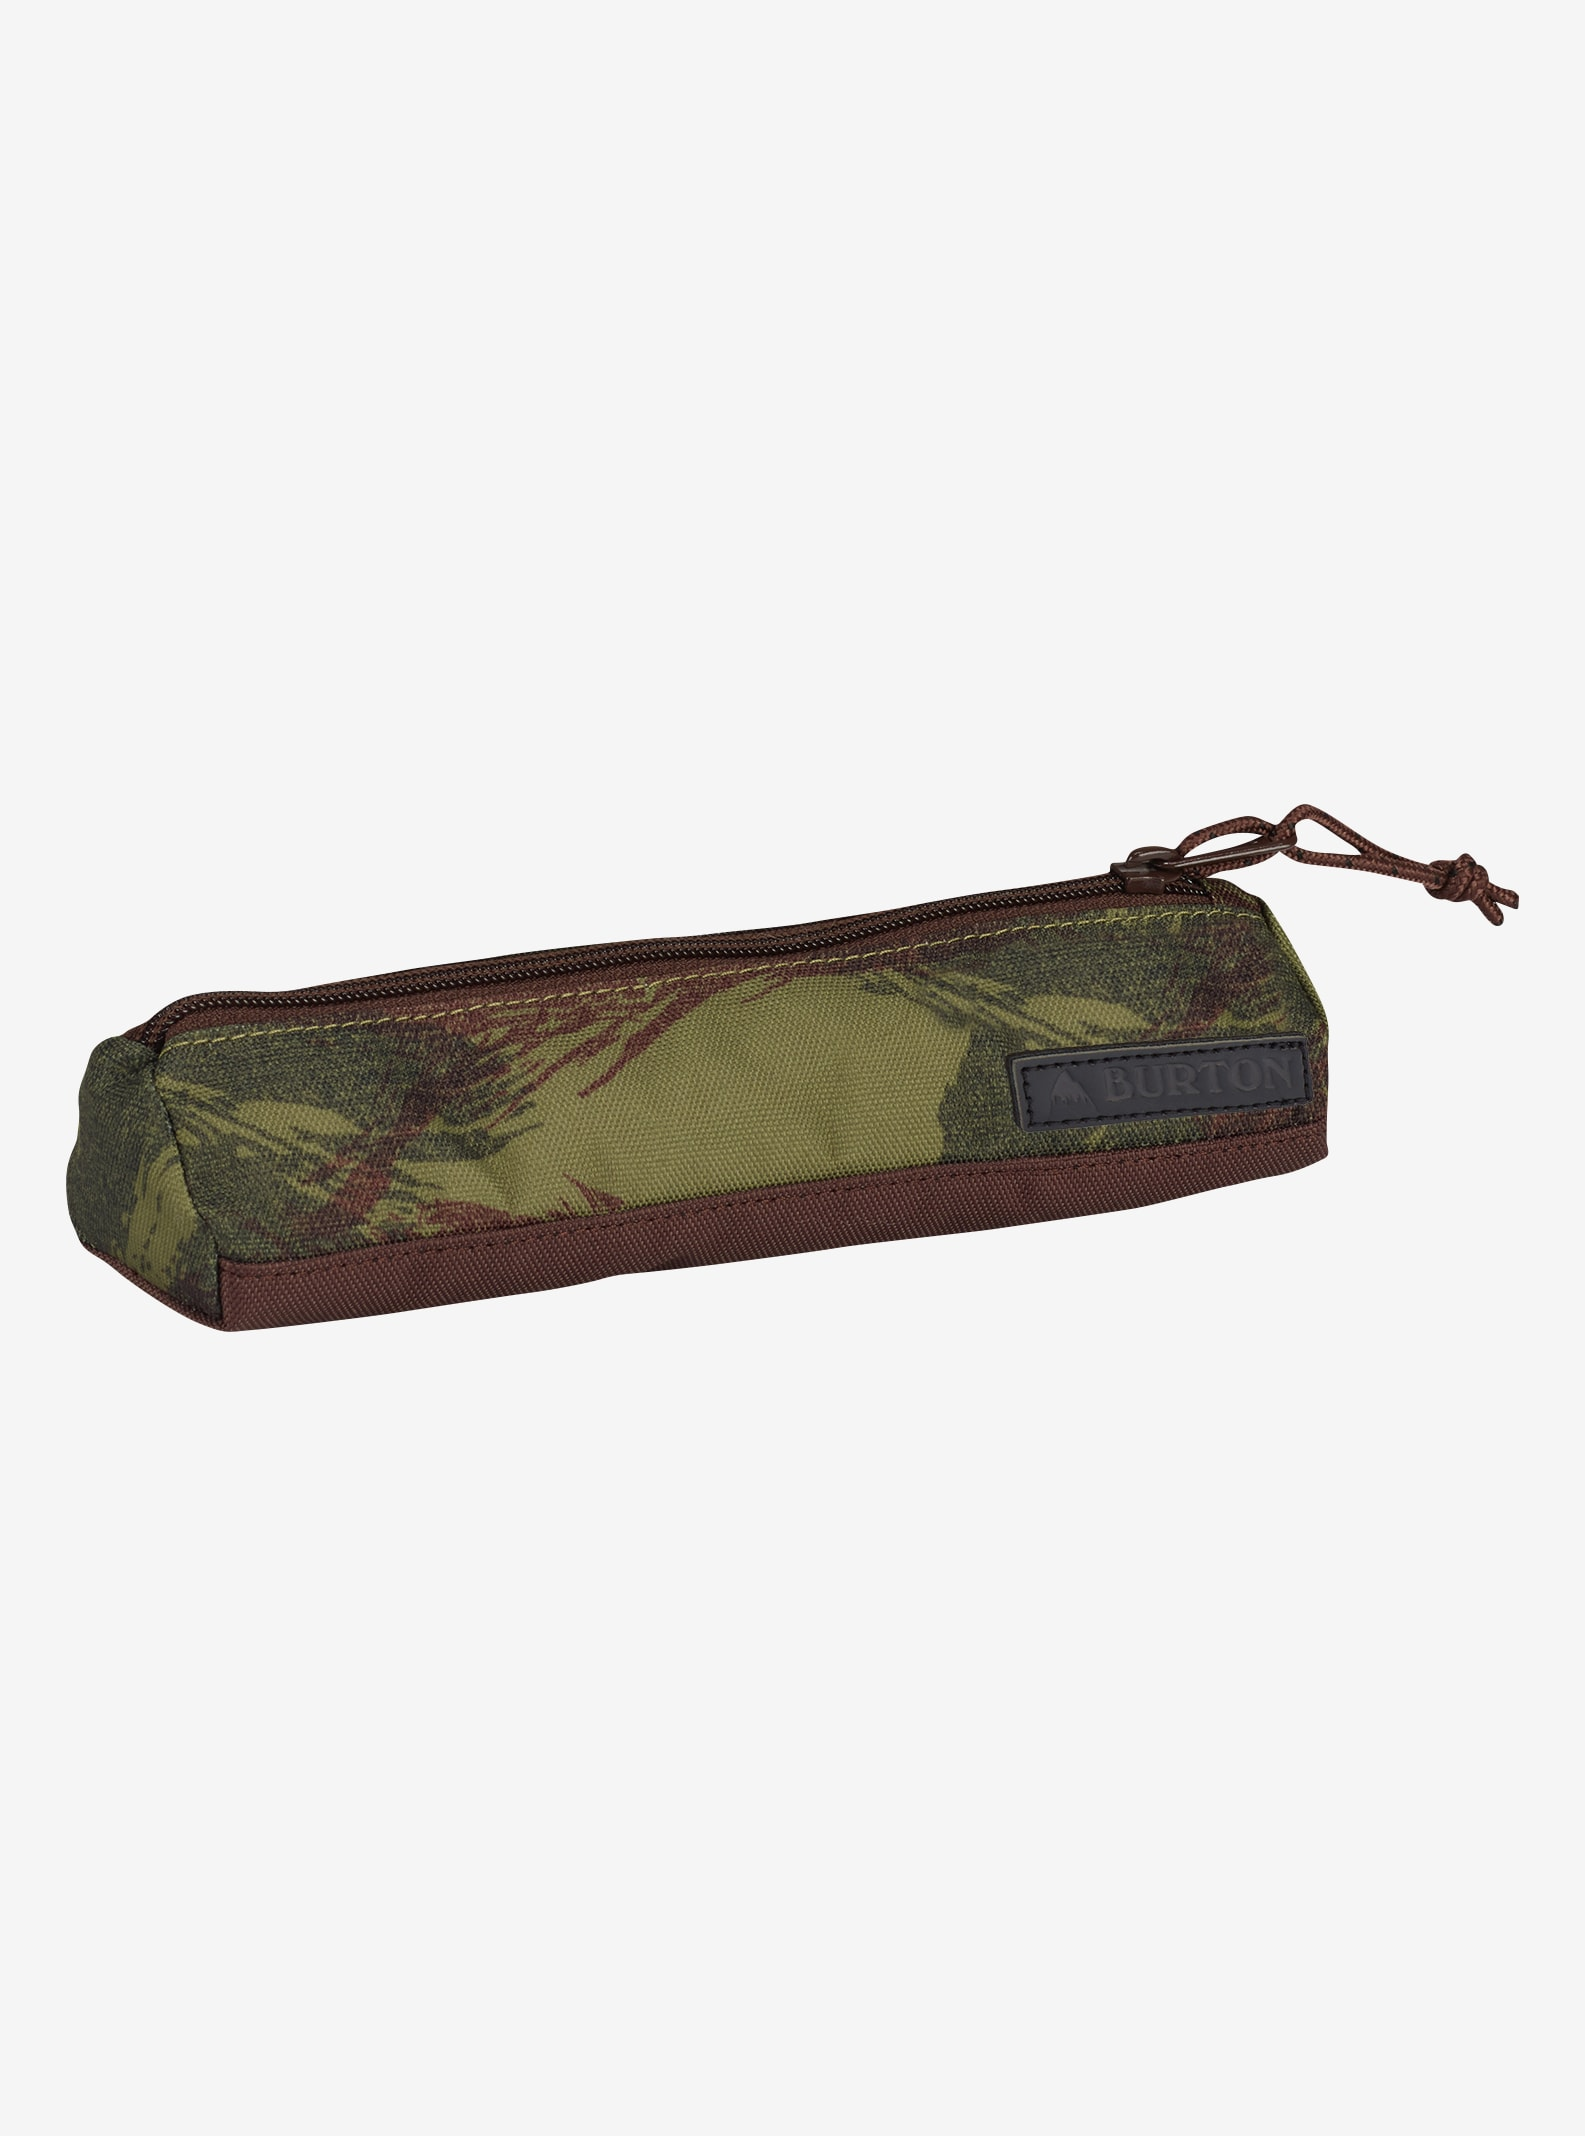 Burton Token Case shown in Brushstroke Camo Print